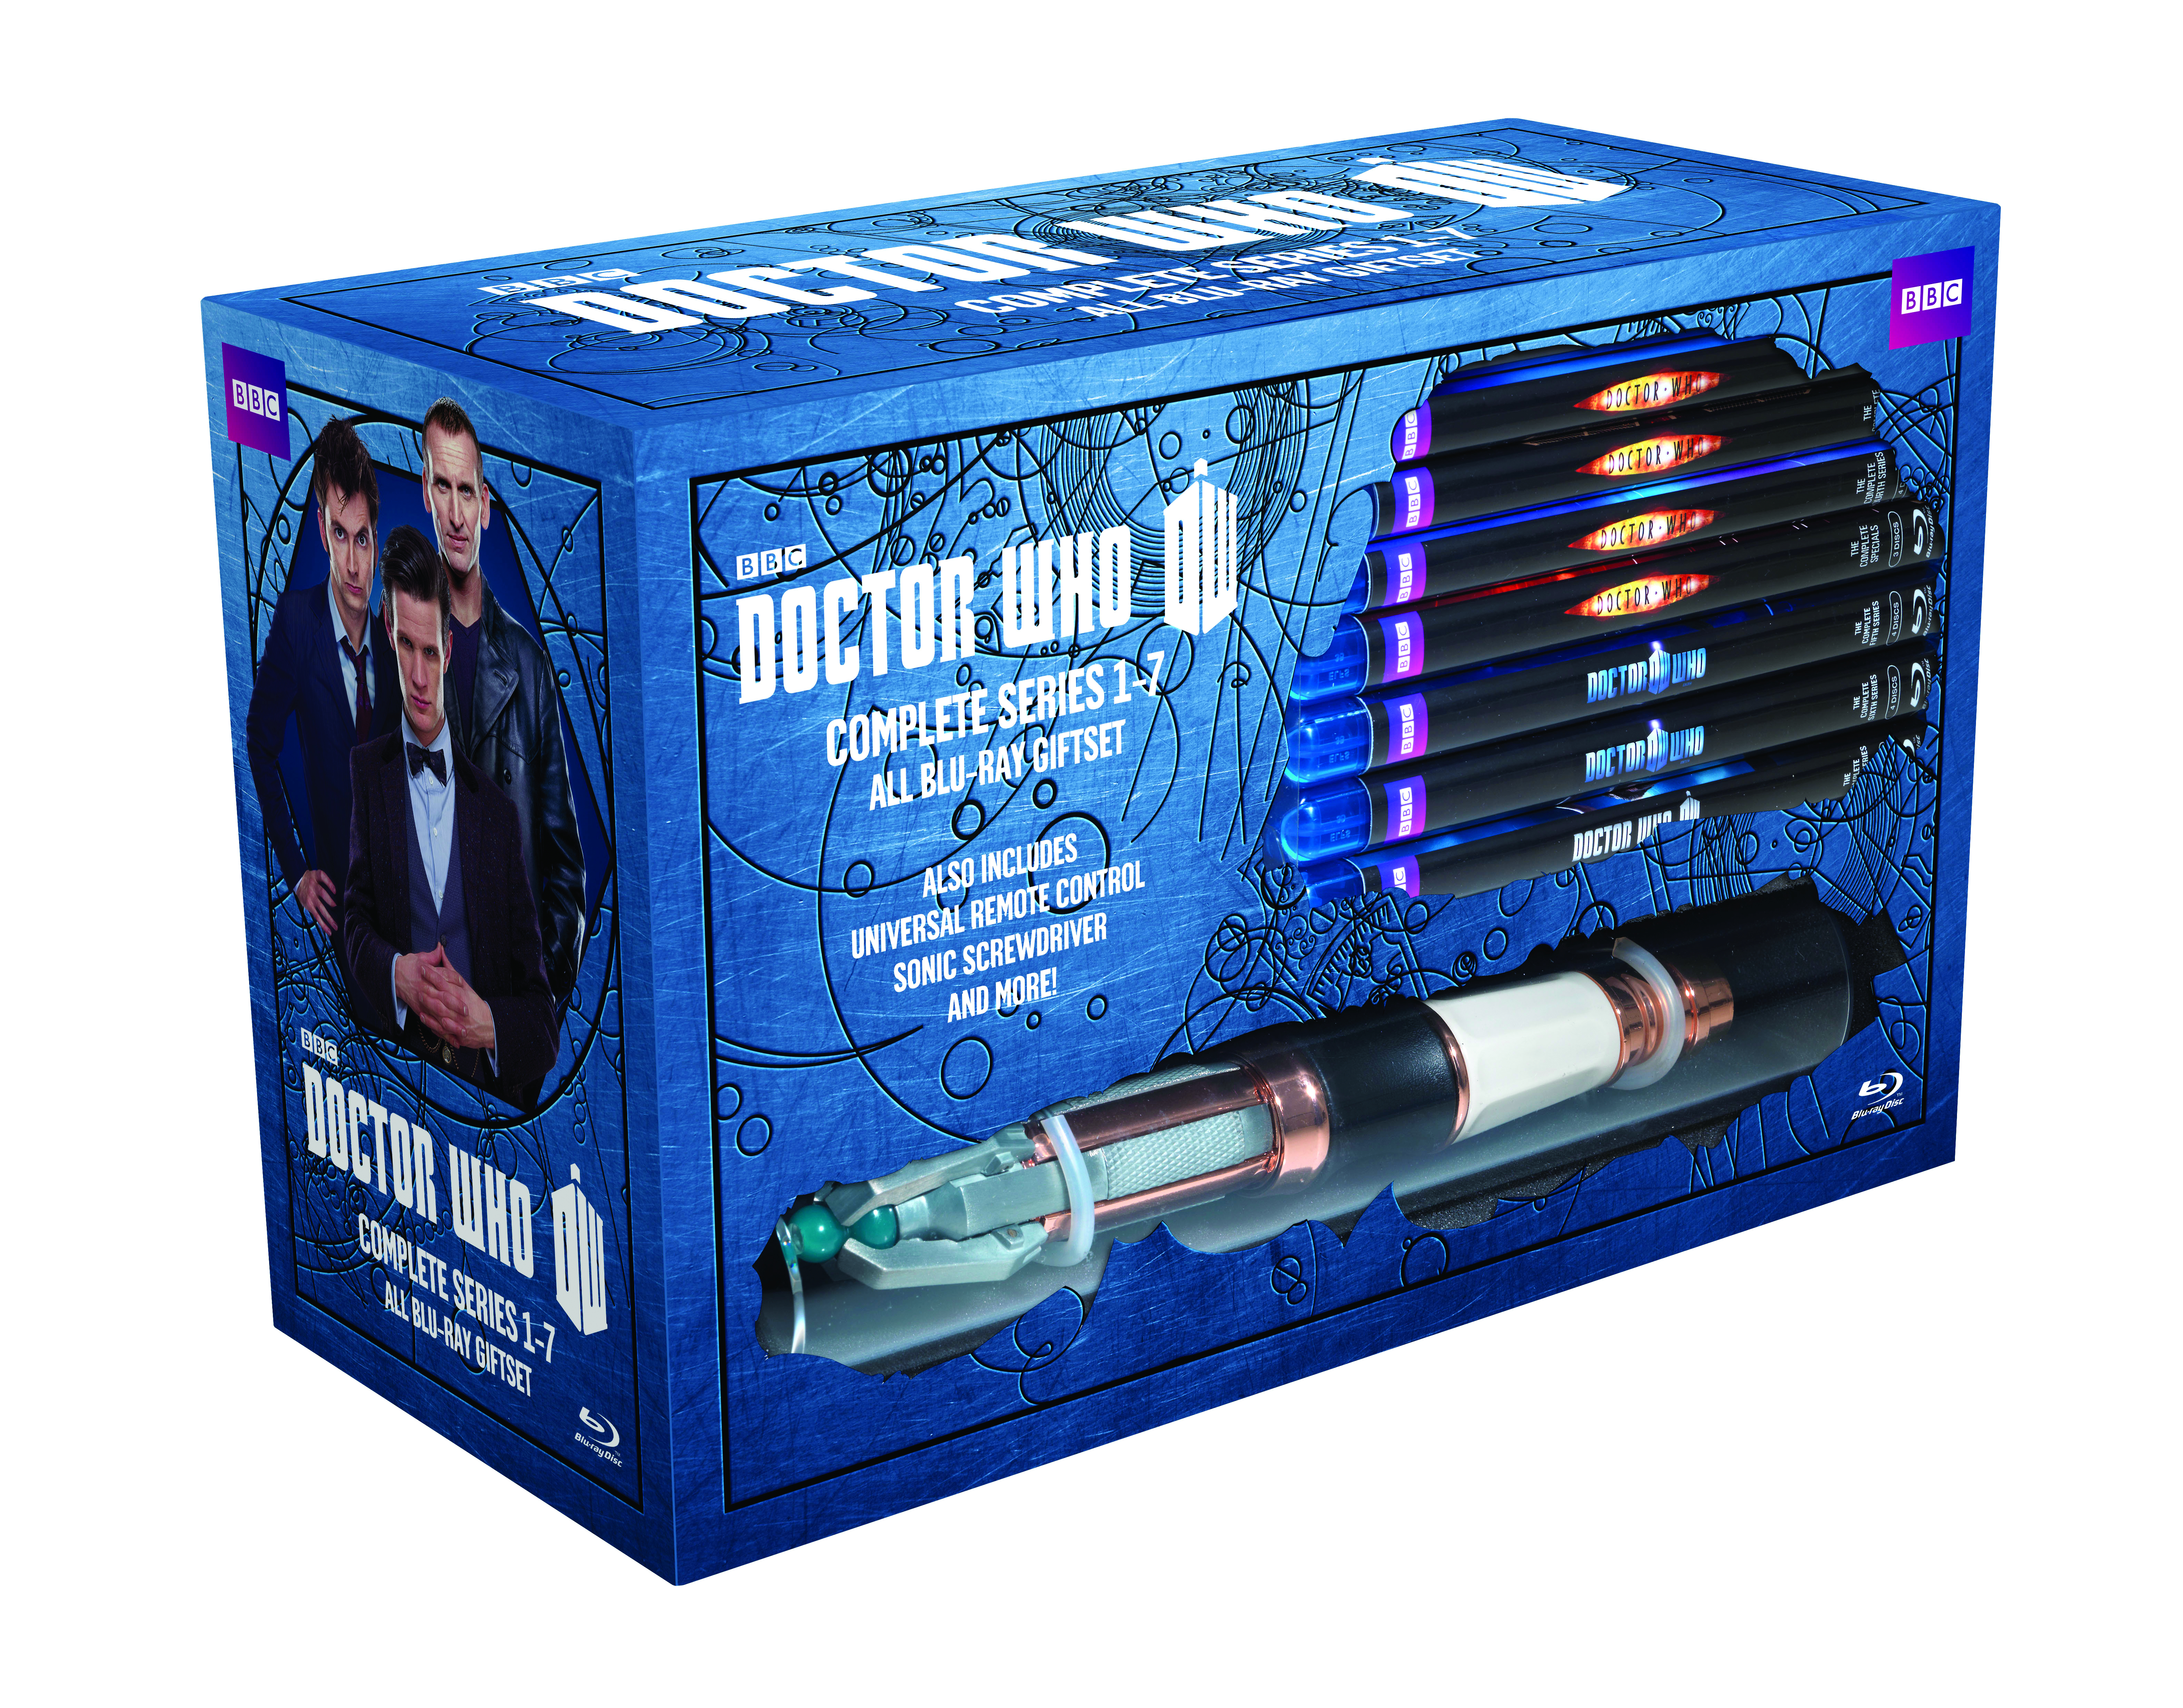 DOCTOR WHO BD COMP SER 01-07 LTD ED GIFT SET